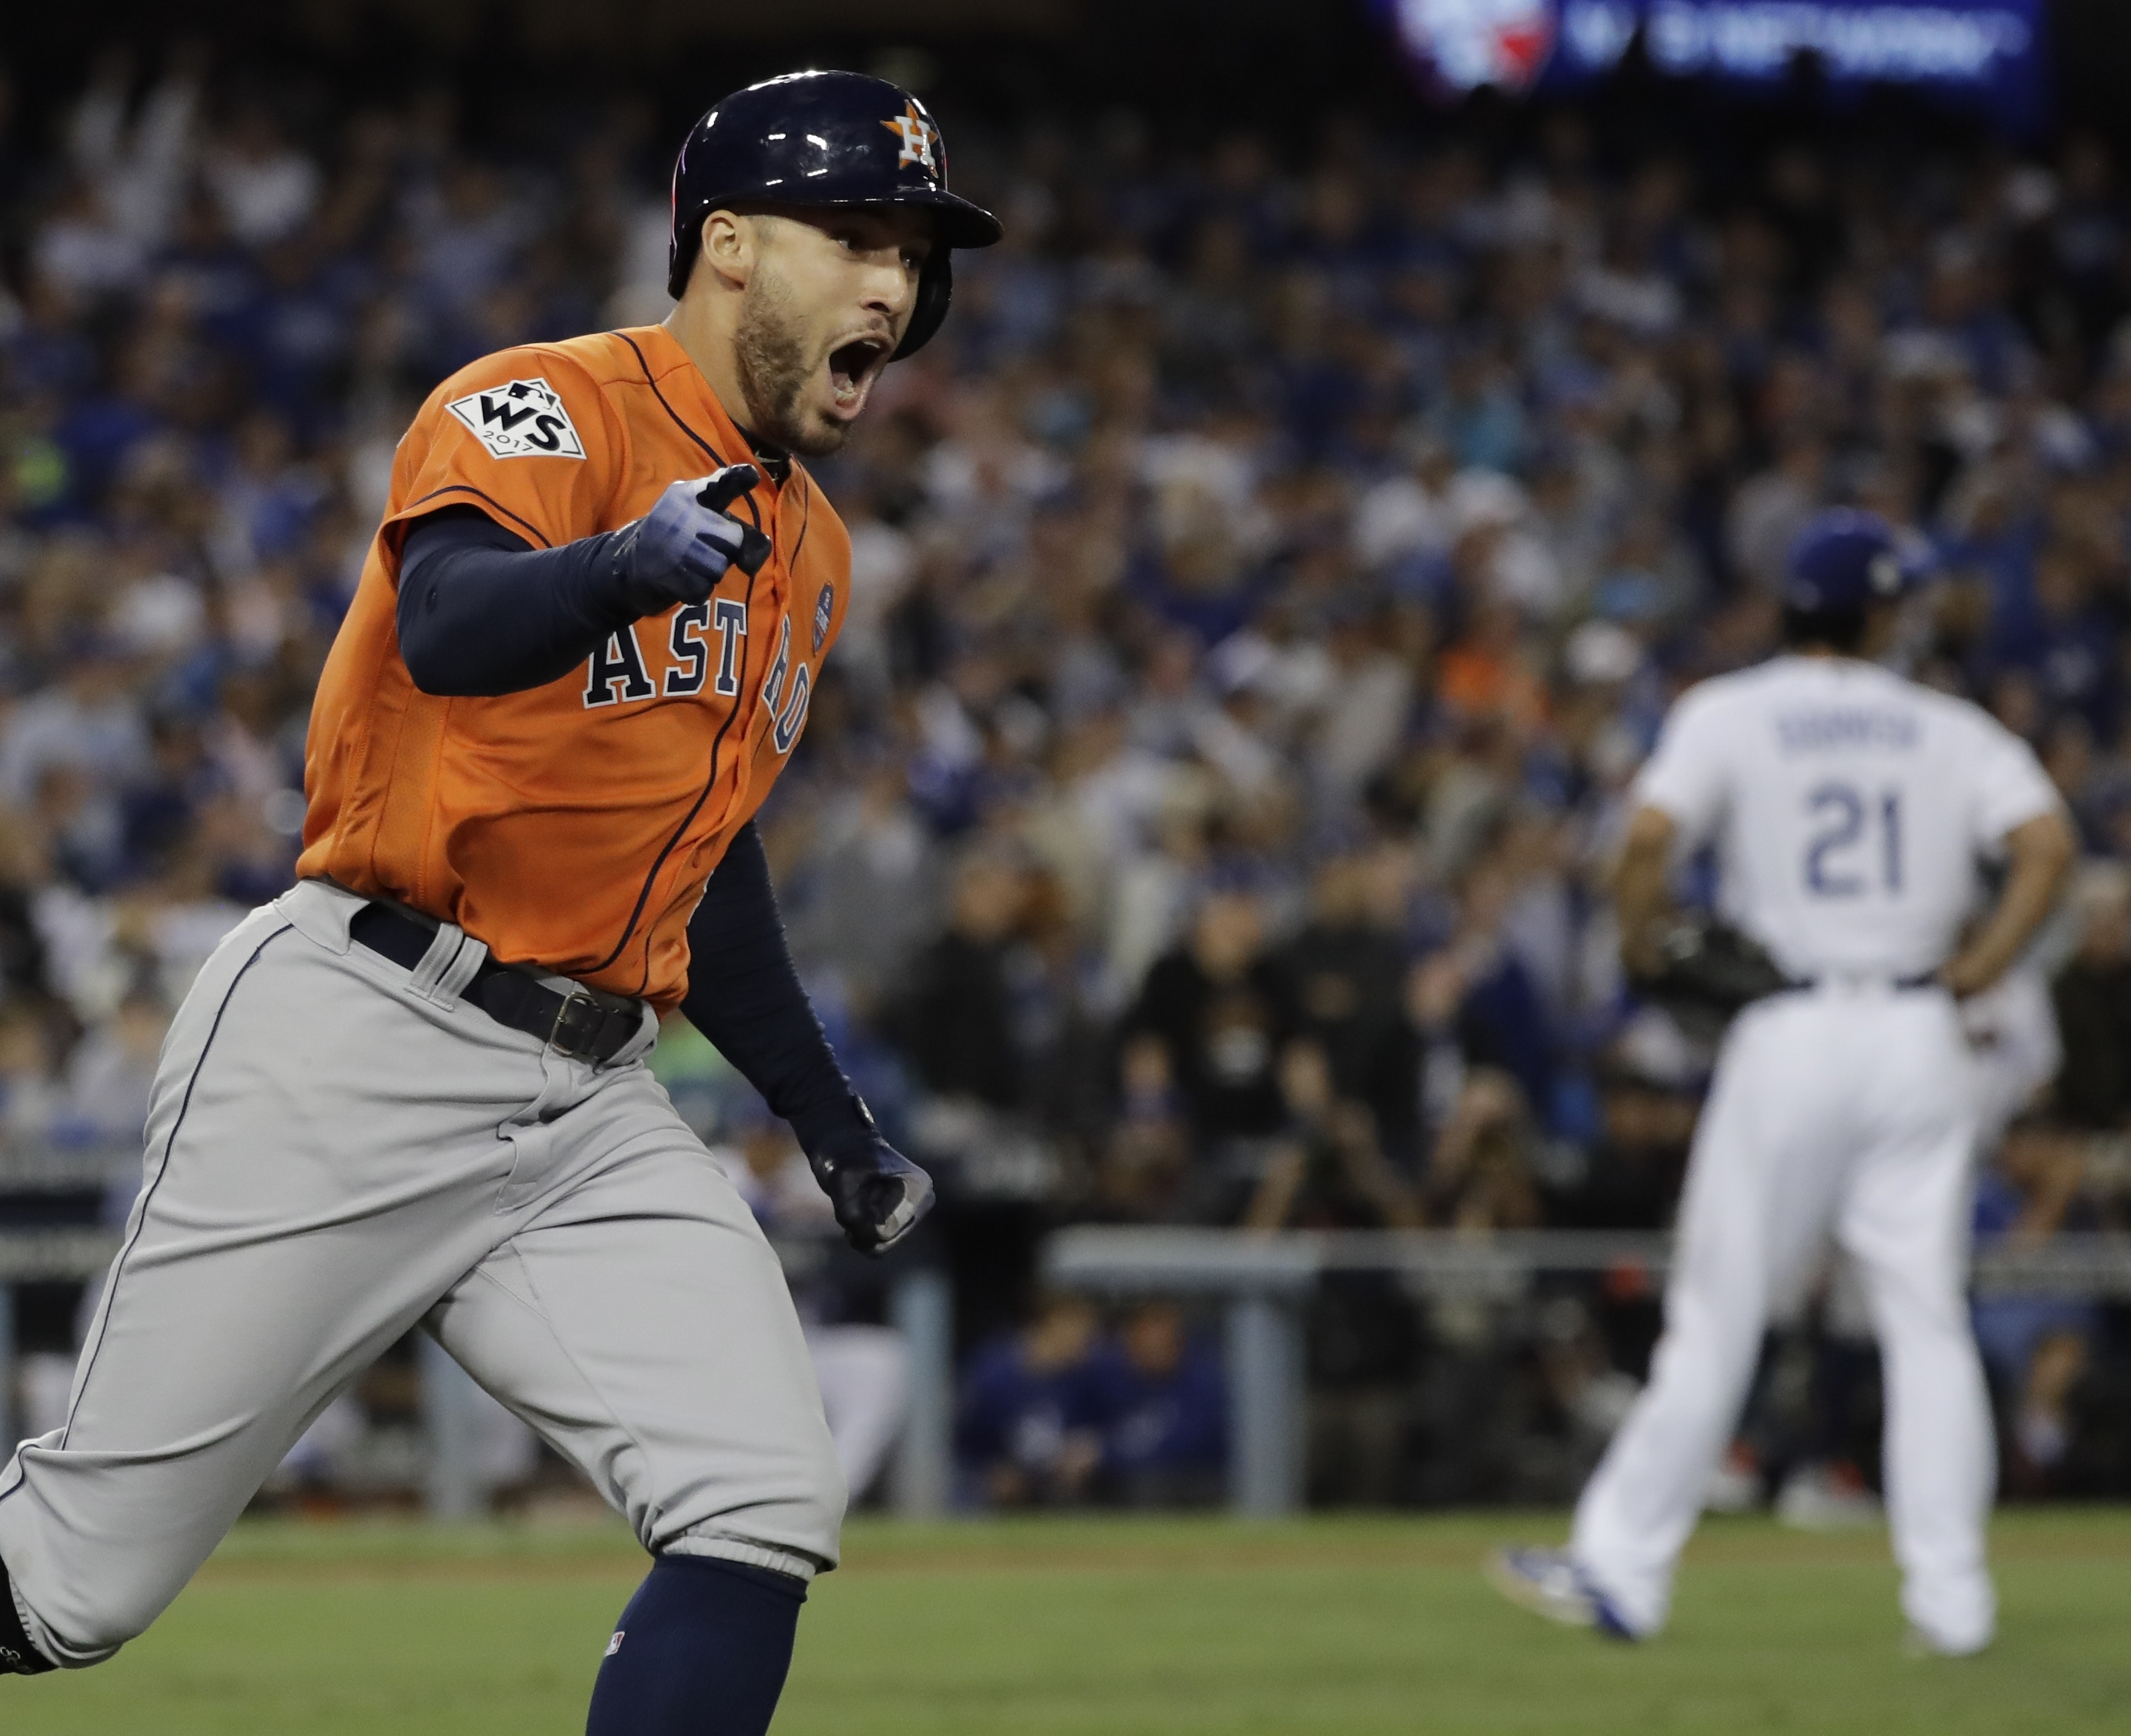 Houston Astros' George Springer reacts after hitting a two-run home run during the second inning of Game 7 of the World Series against the Los Angeles Dodgers Wednesday, Nov. 1, 2017, in Los Angeles. (AP Photo/David J. Phillip)